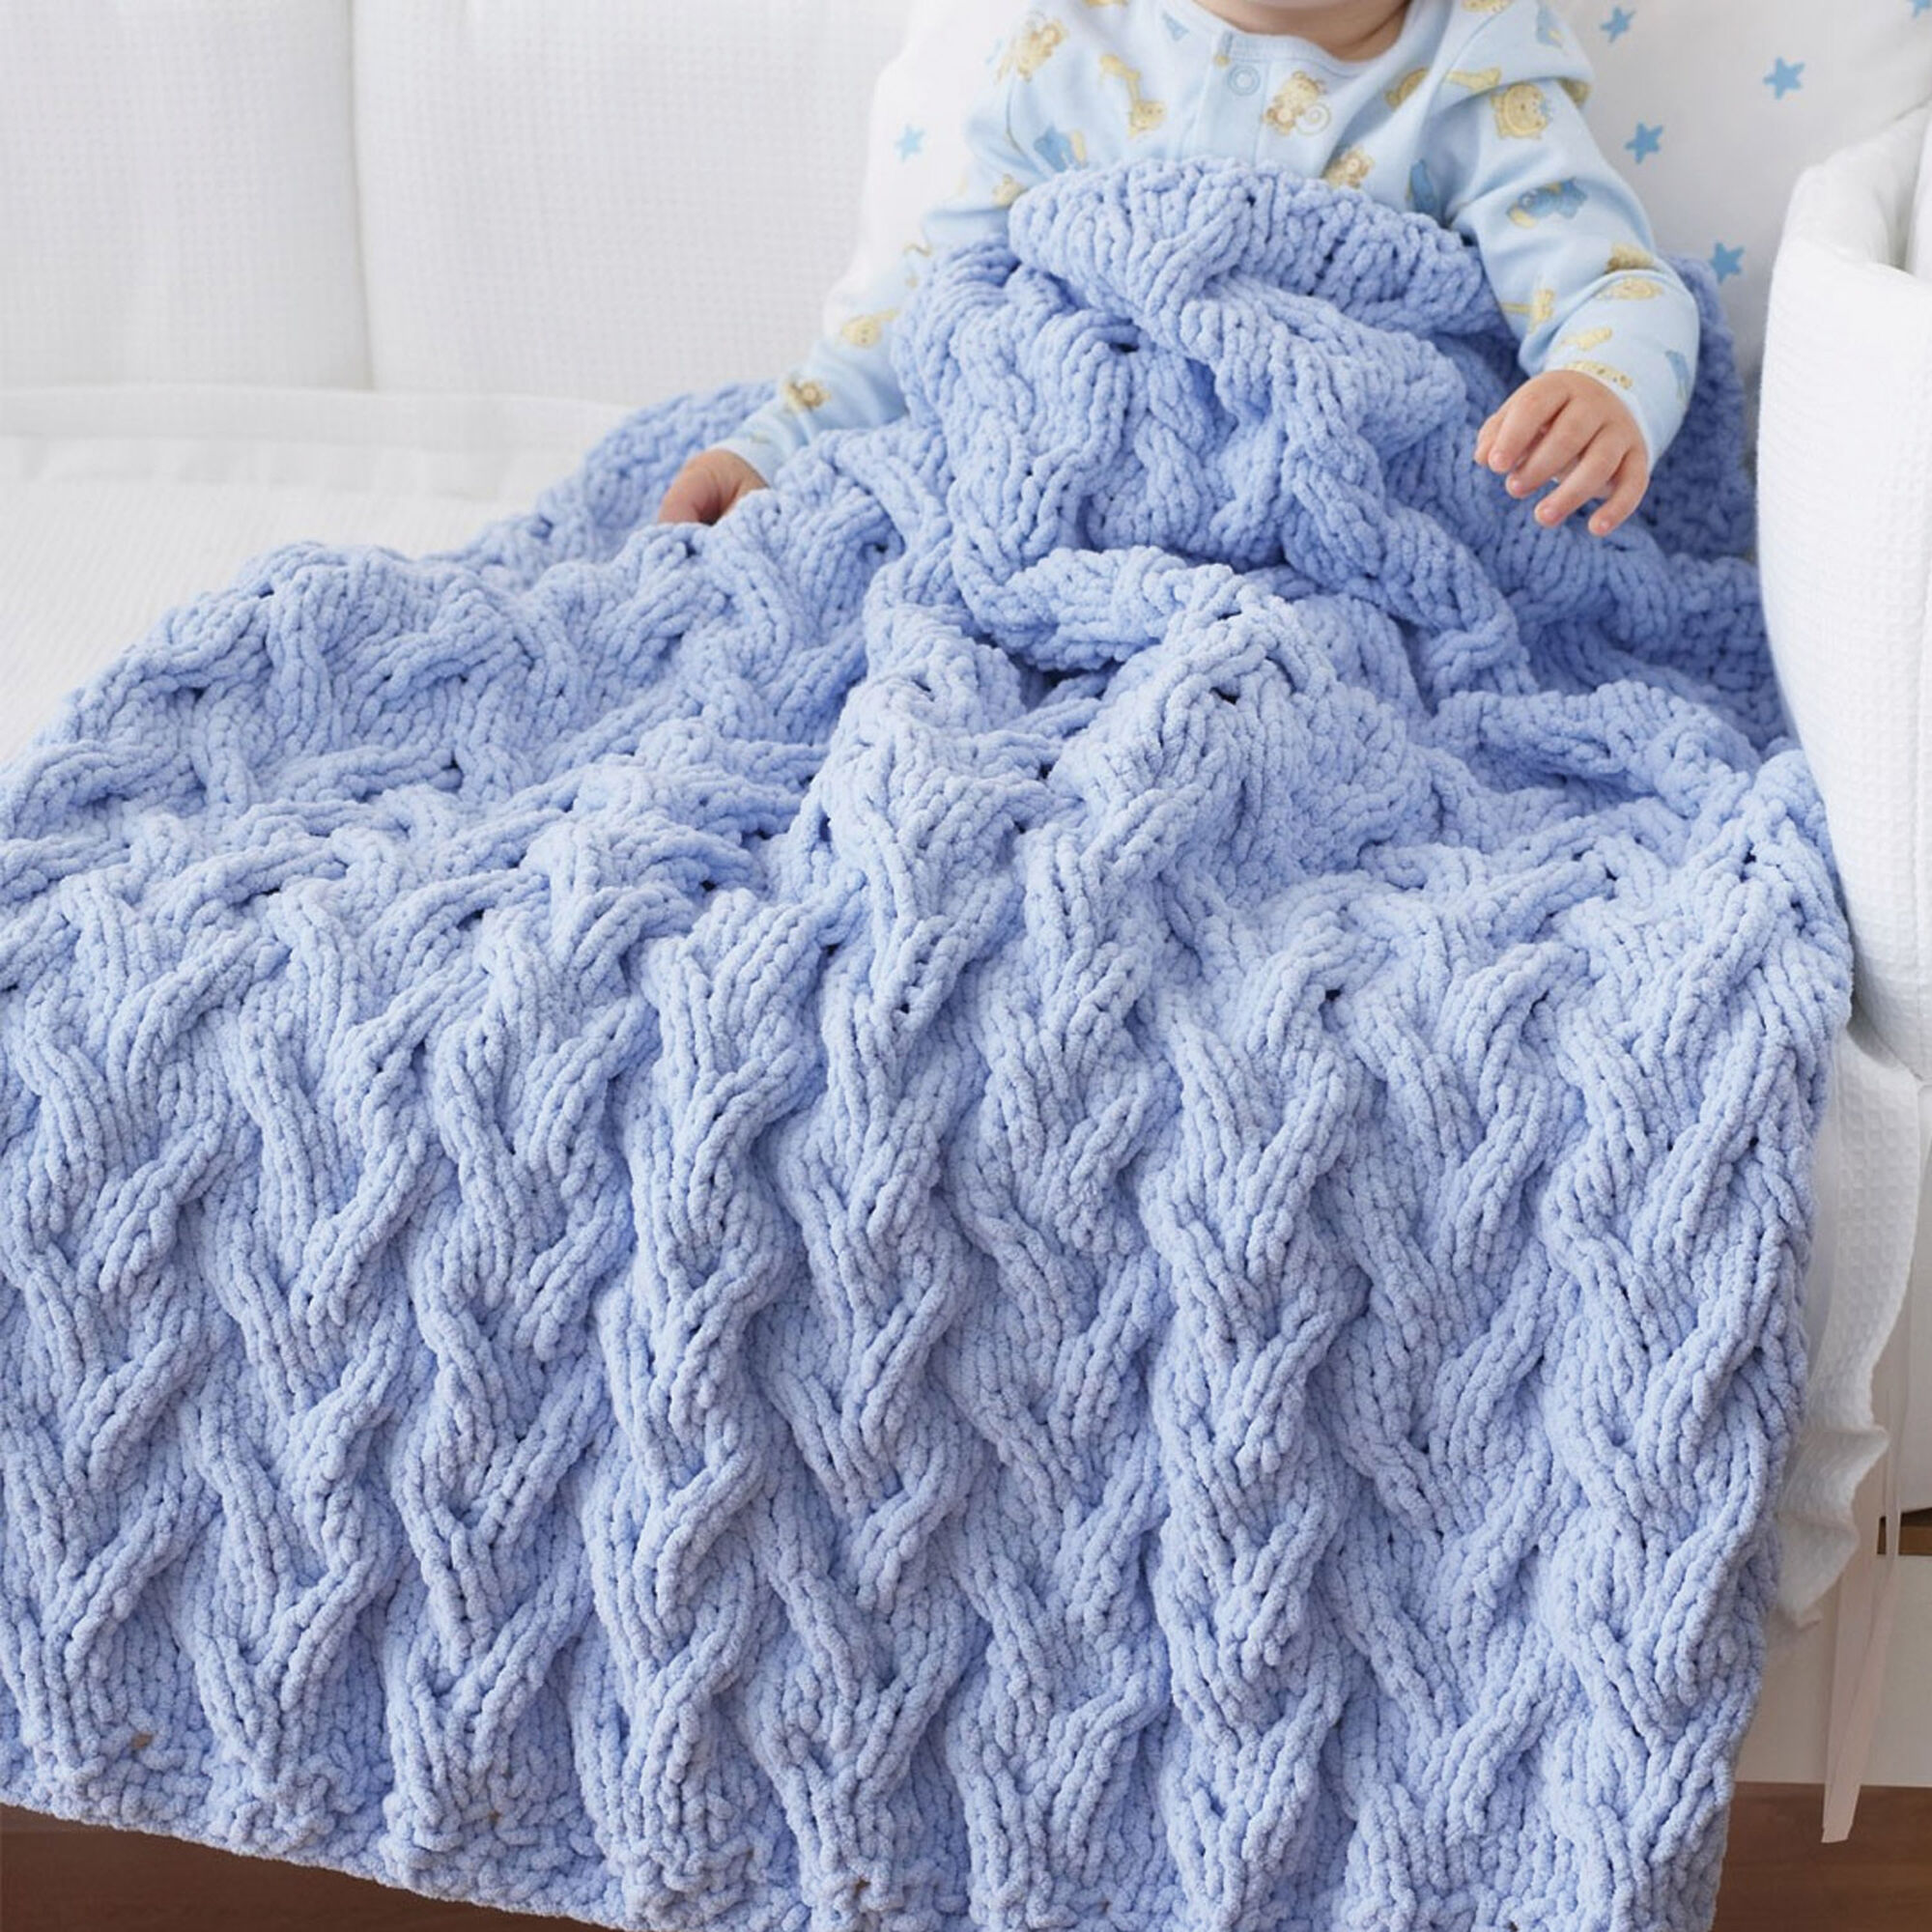 Bernat Shadow Cable Baby Blanket Pattern | Yarnspirations